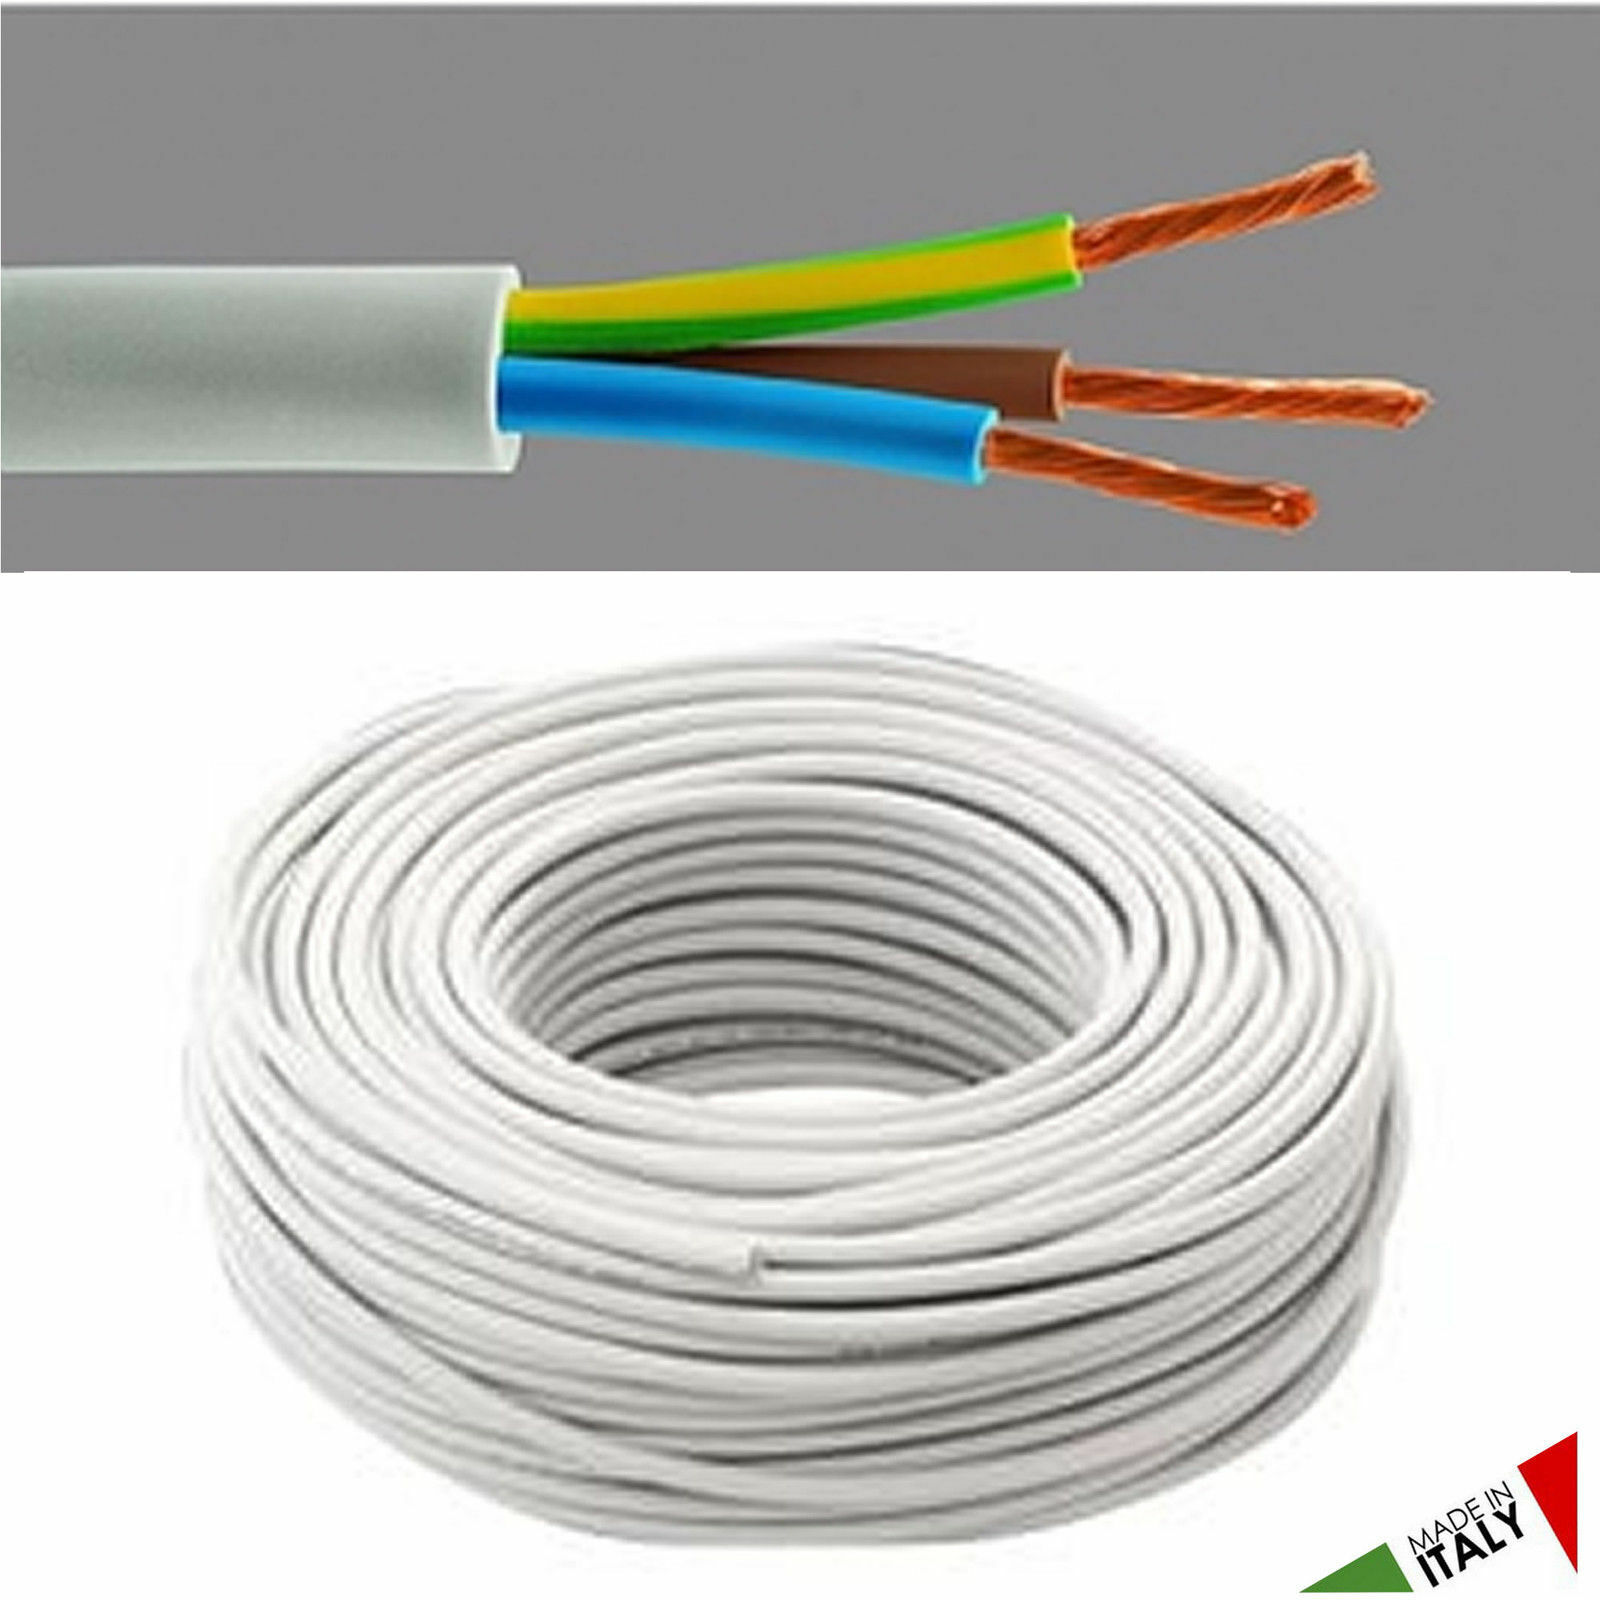 Electric Cable Multipolar Fror 4x1 50 4g1 Unshielded 450 750v Cut Electrical Copper Wire Gauge 12 2 Romex Simpull Norton Secured Powered By Verisign